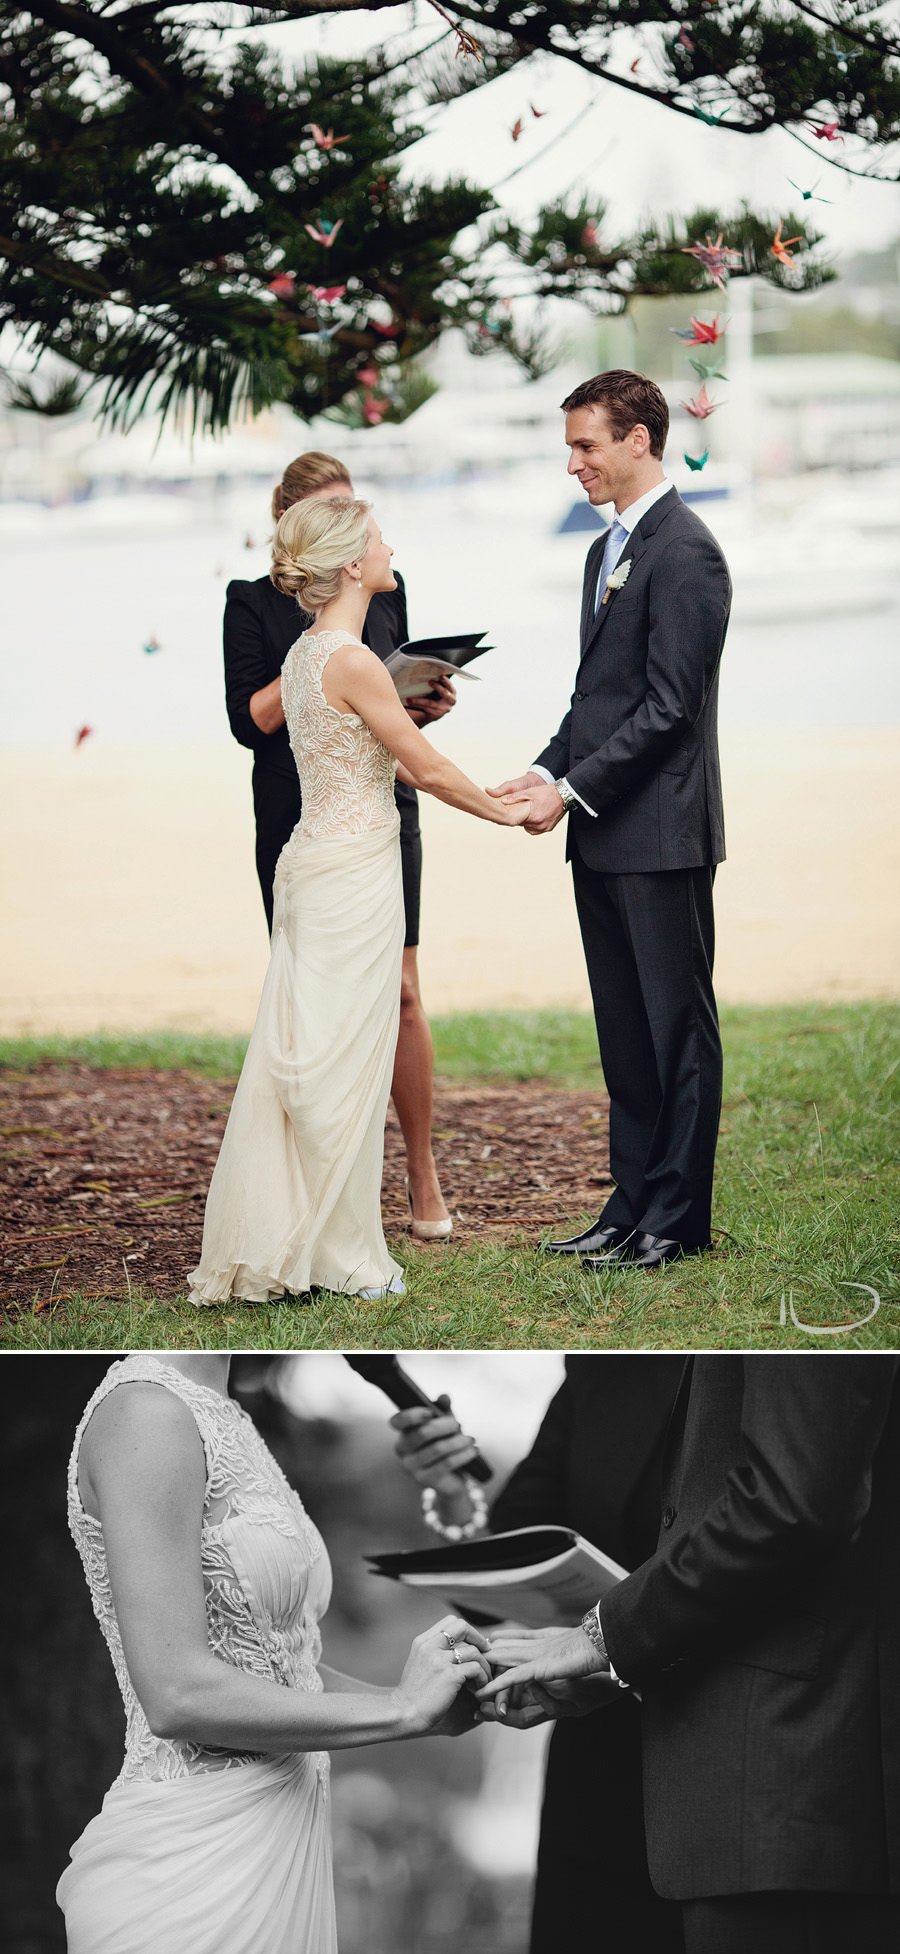 Sydney Wedding Photographers: Vows & exchange of rings